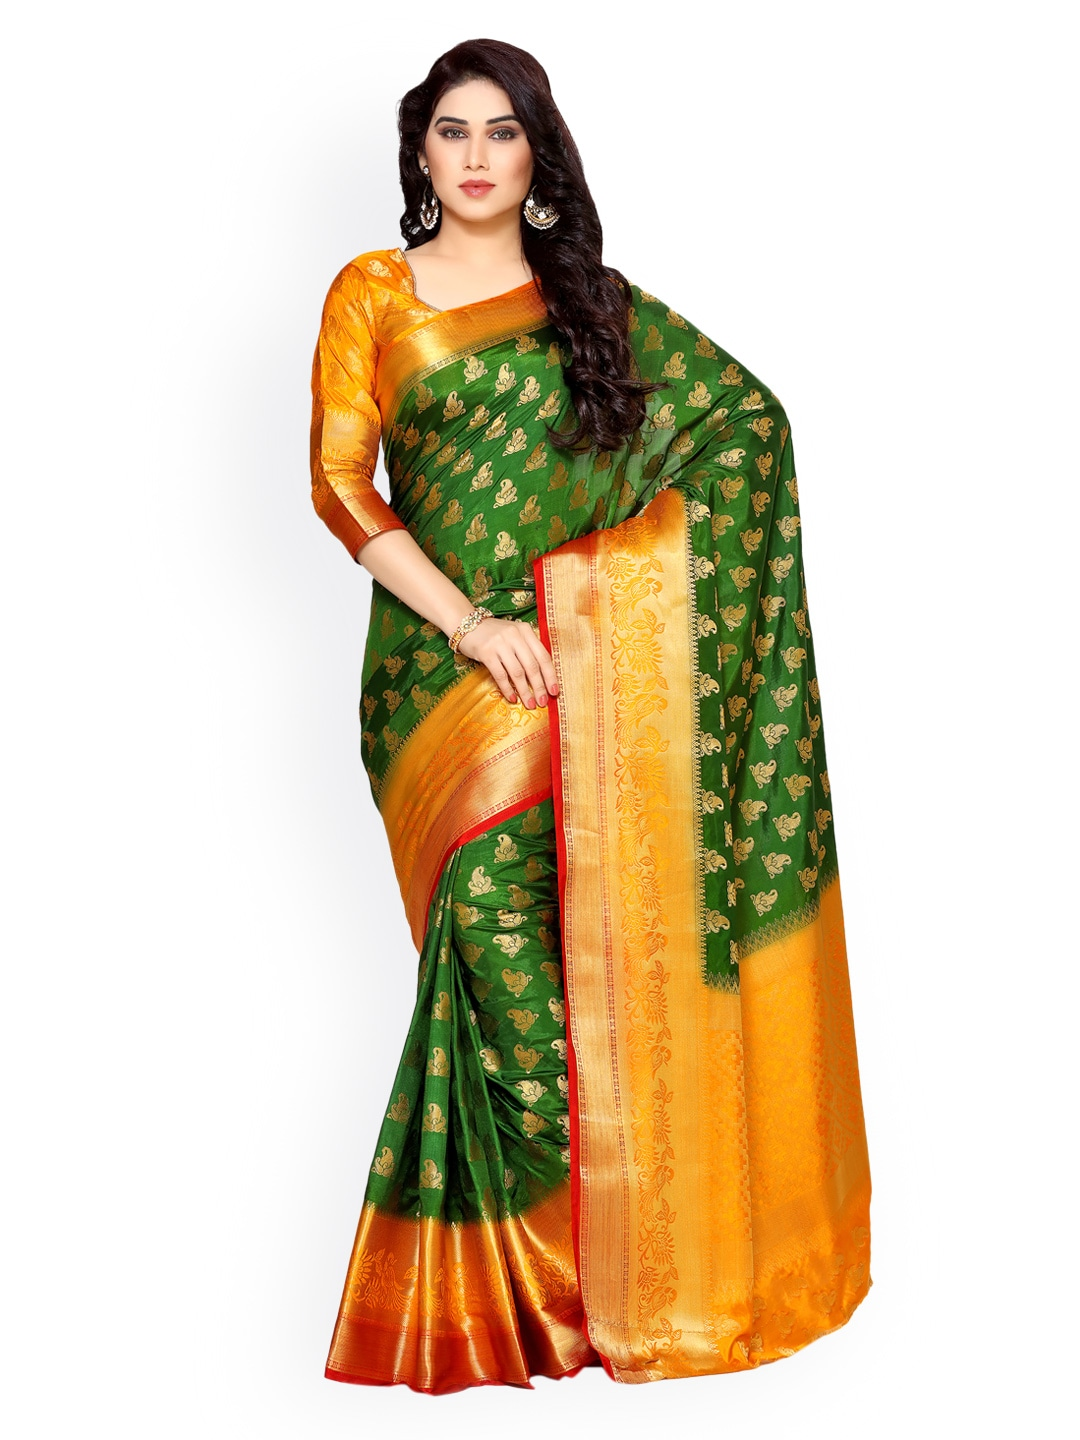 a1b5e76b64b9f Green Saree - Buy Green Color Sarees Online